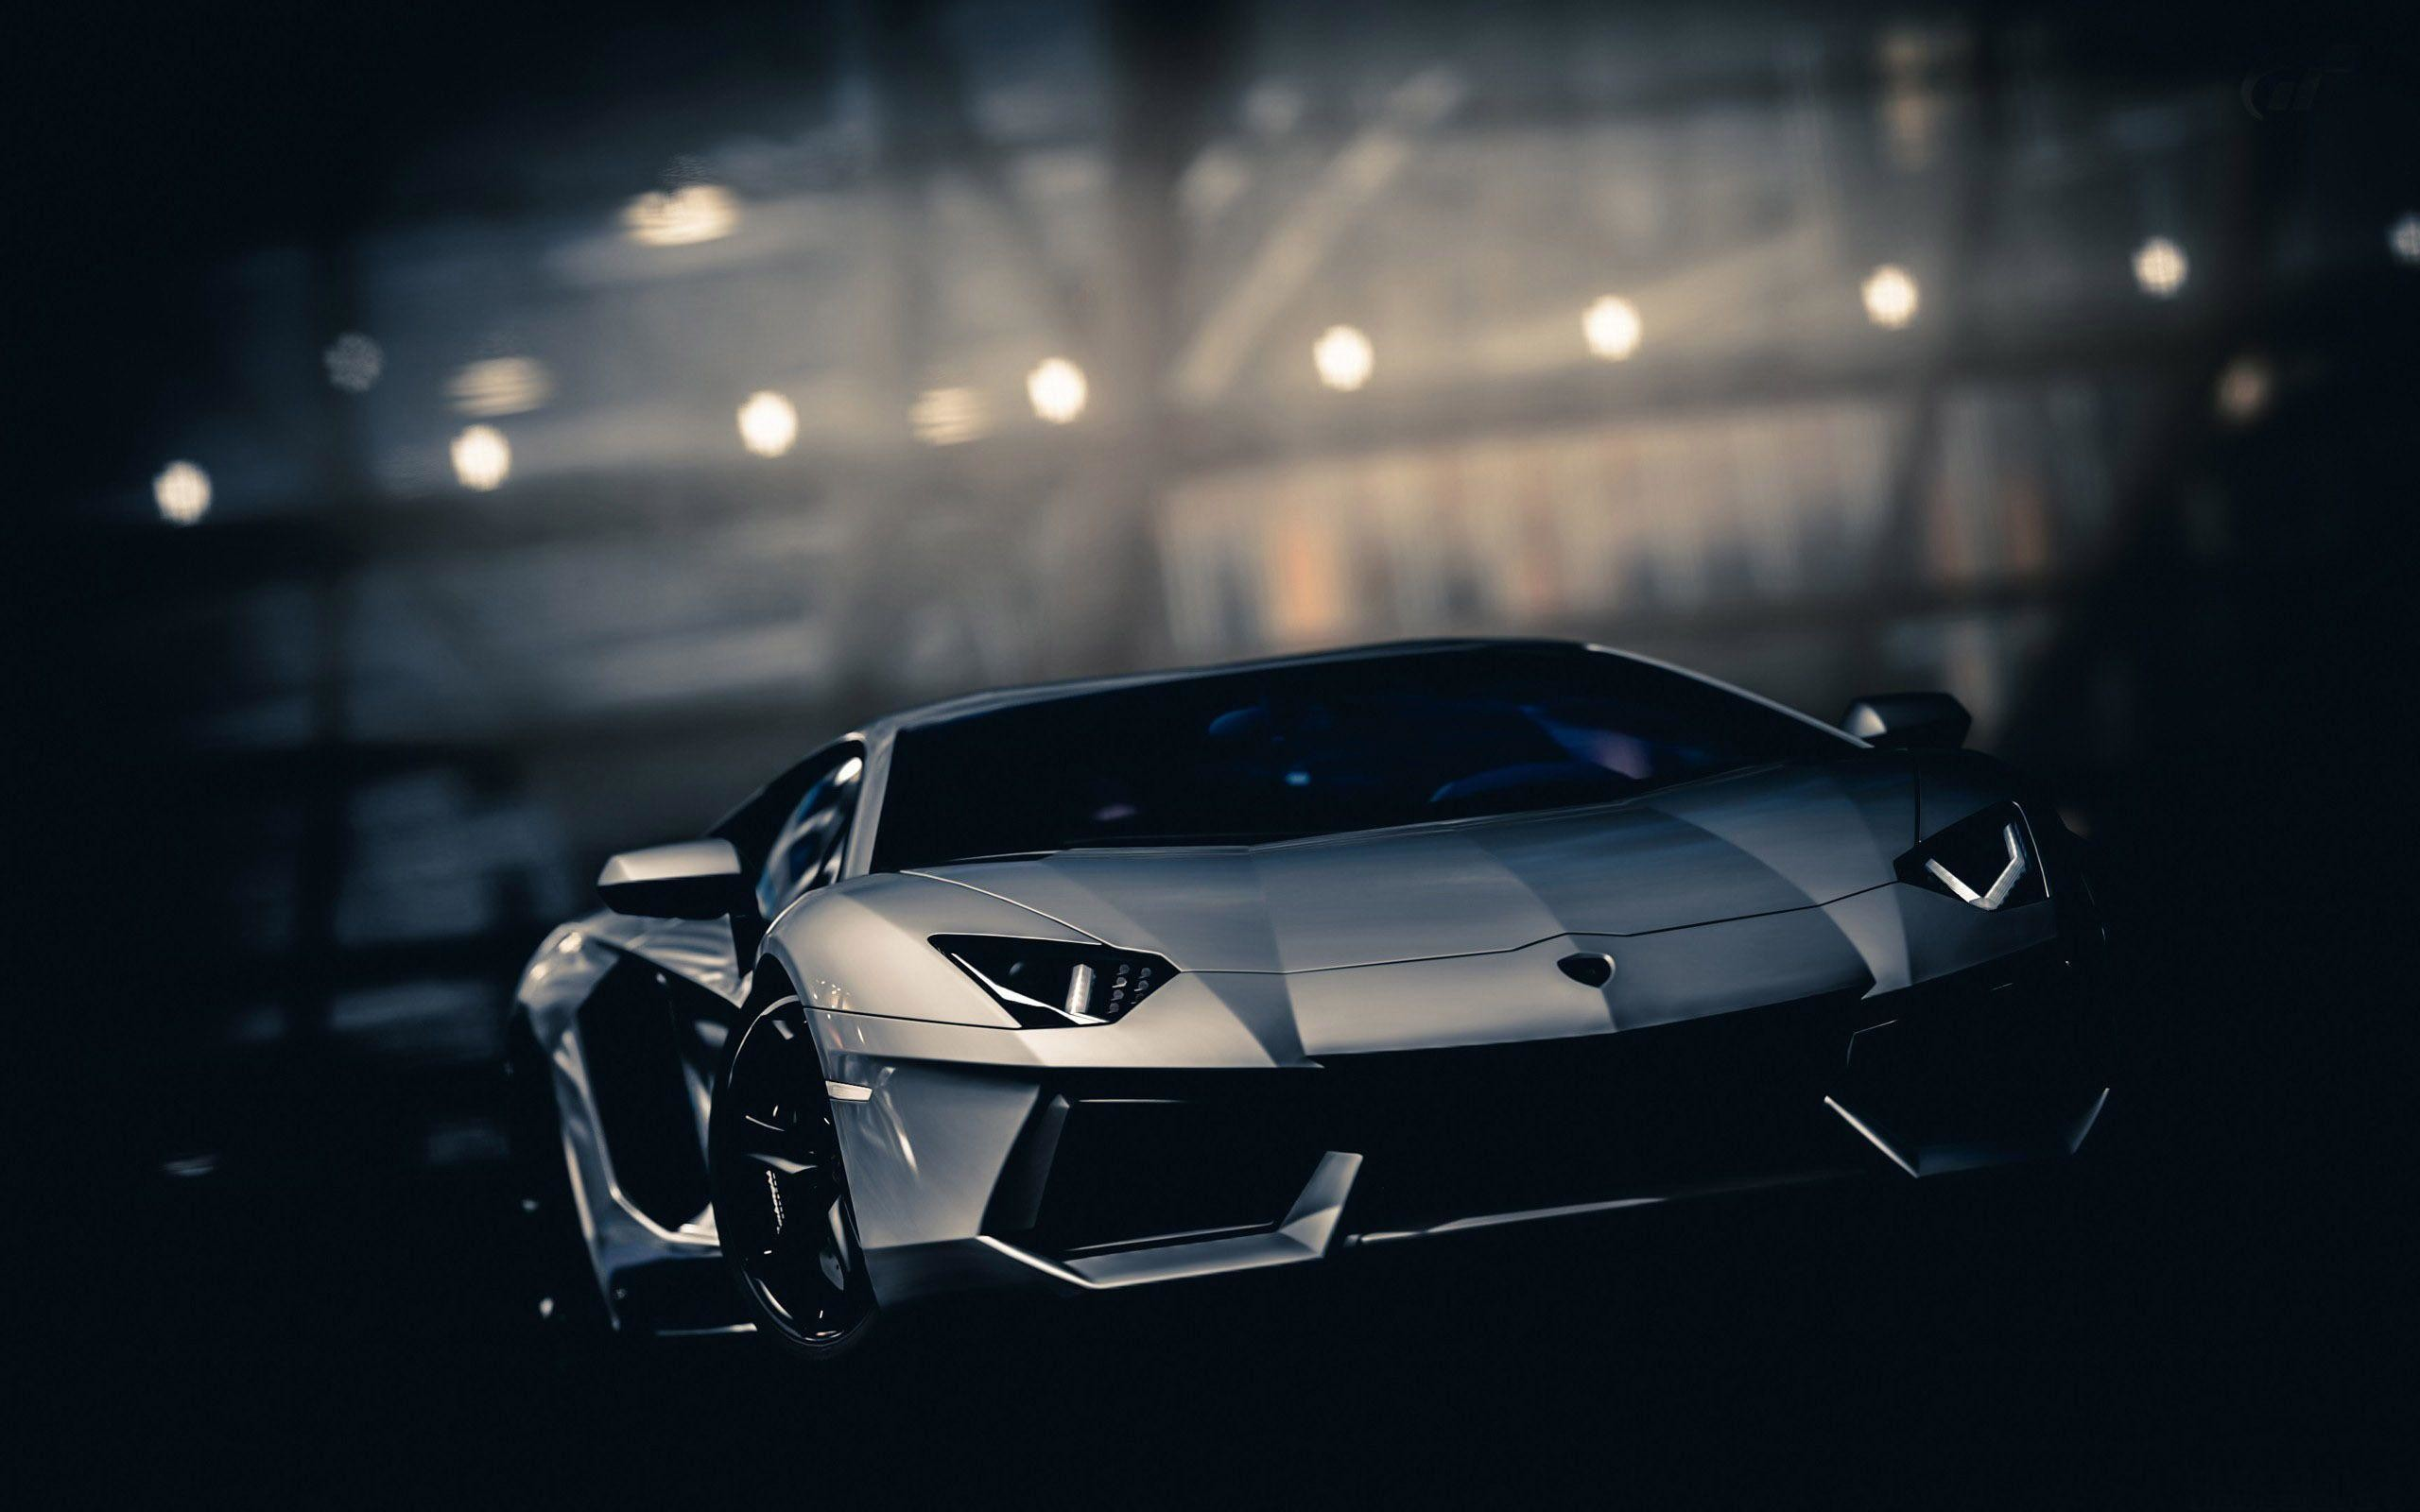 Res: 2560x1600, Lamborghini. | Wallpapers For > Lamborghini Aventador Black ...